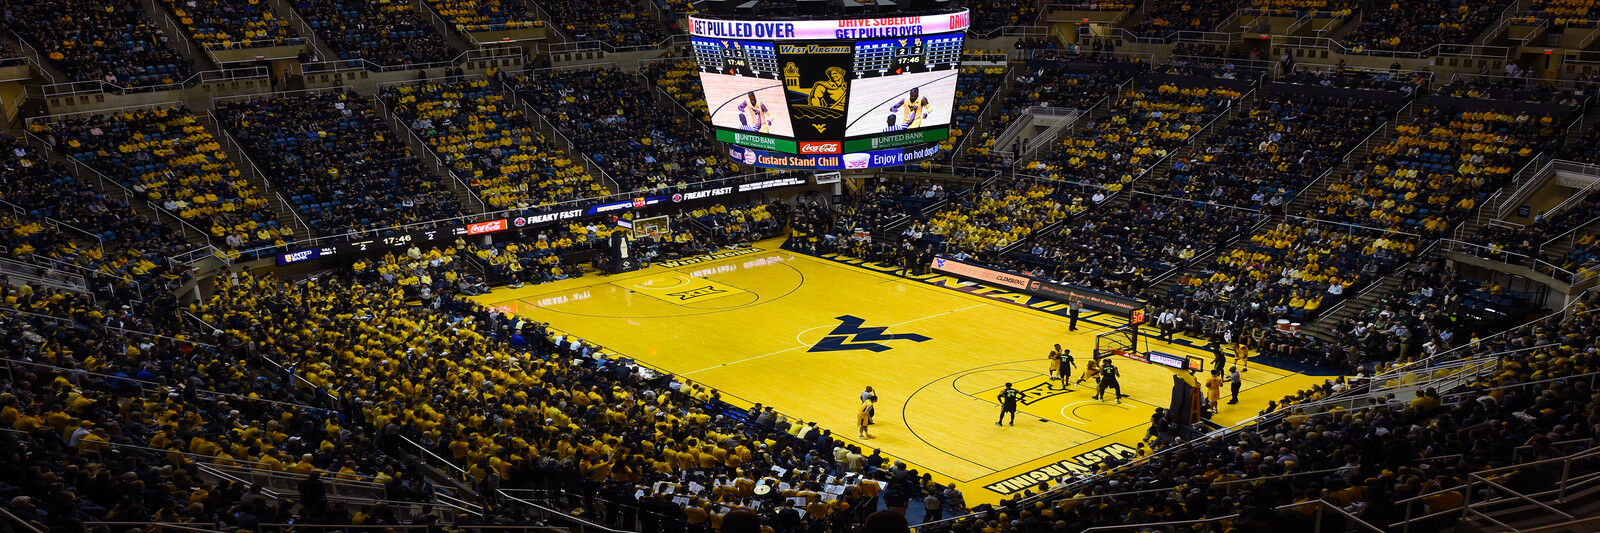 Kentucky Wildcats at West Virginia Mountaineers Basketball